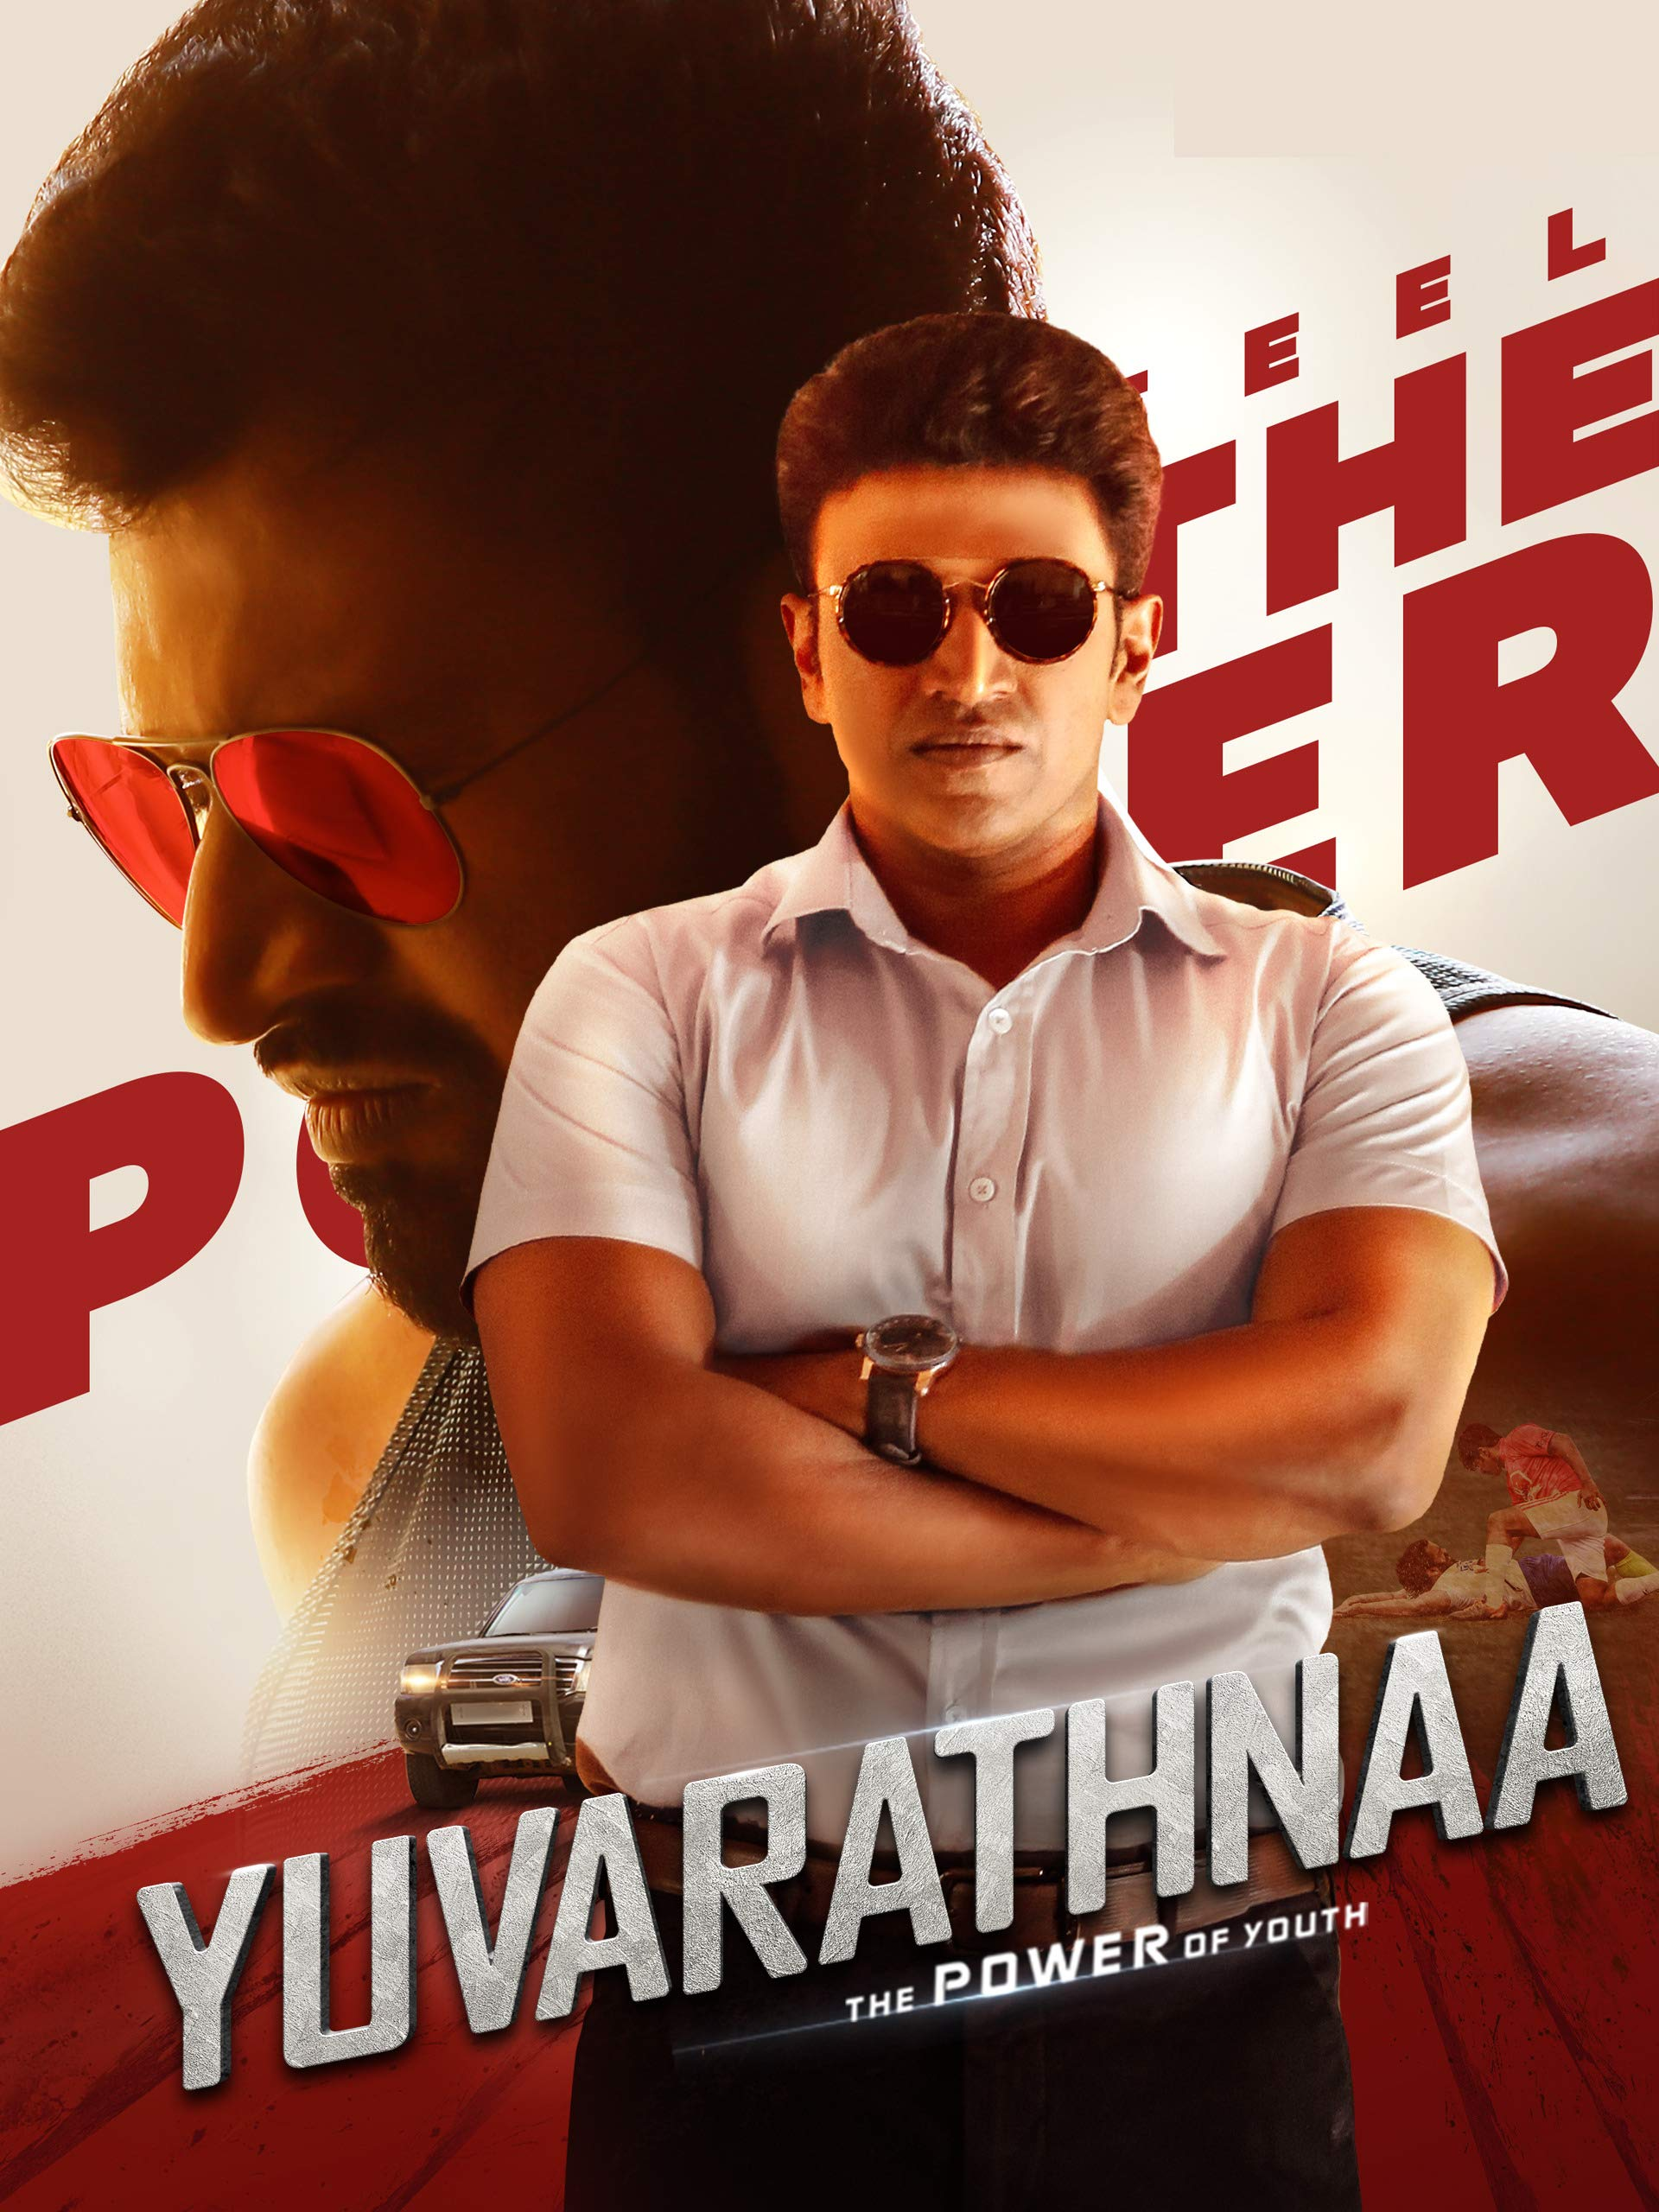 Yuvarathnaa 2021 Hindi Dubbed Movie 480p HDRip ESub 400MB x264 AAC